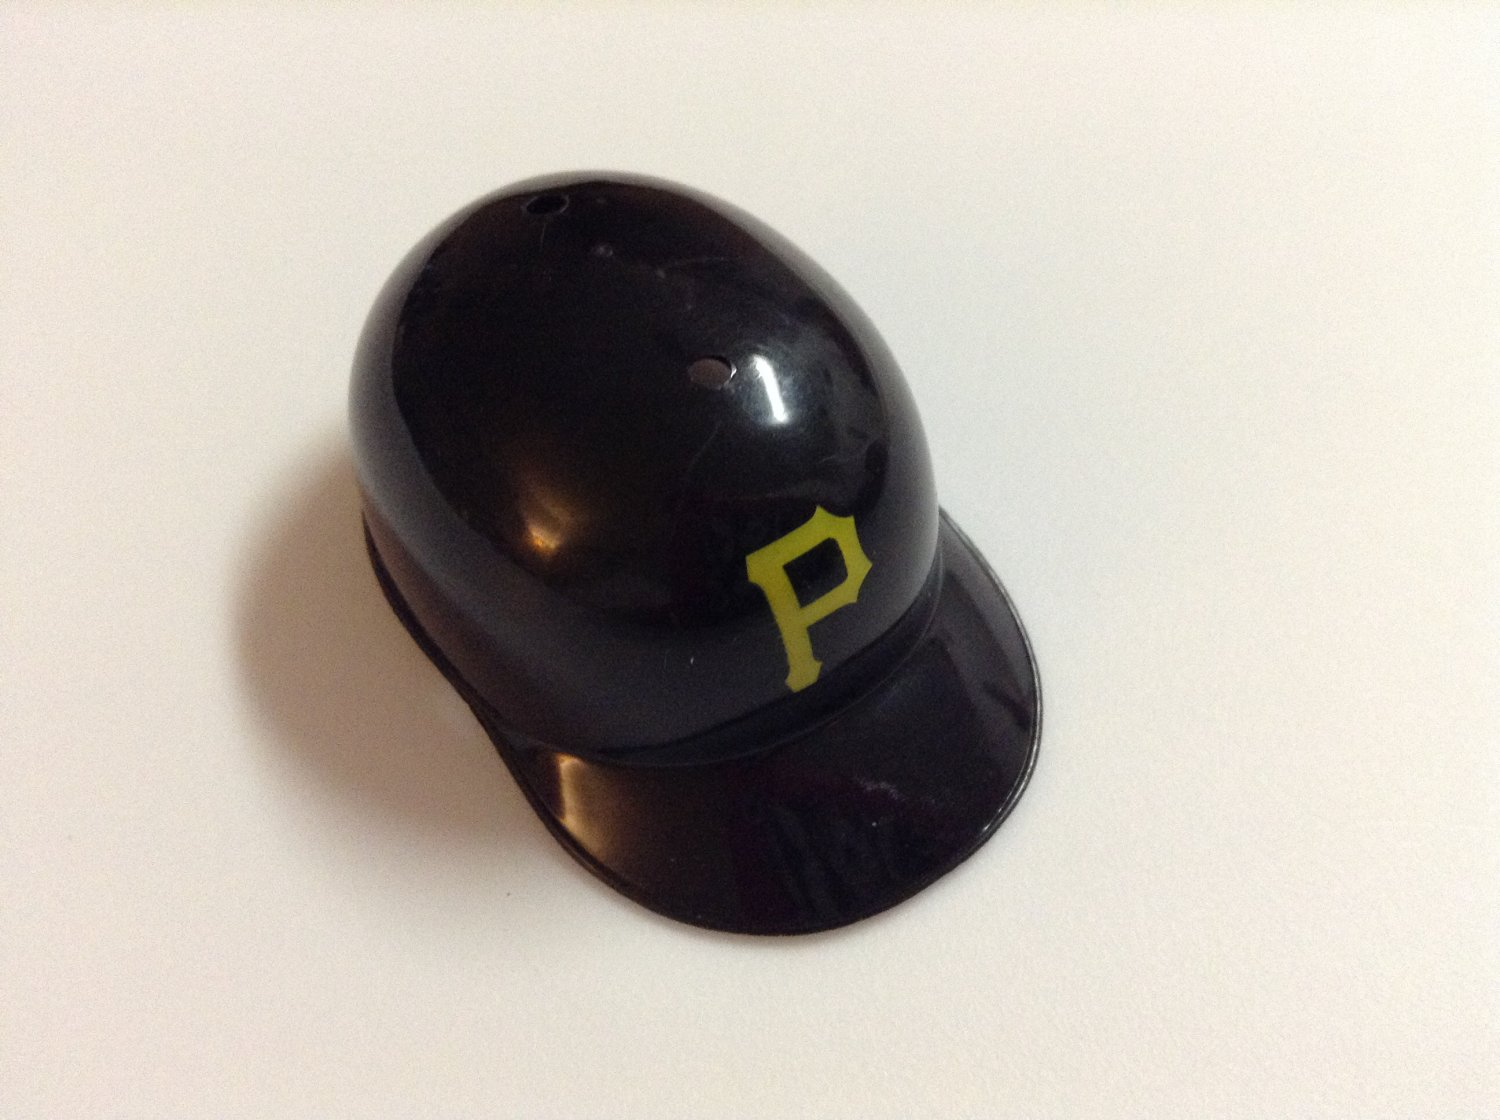 MLB Mini Helmet - Fits Barbie - Pittsburg Pirates